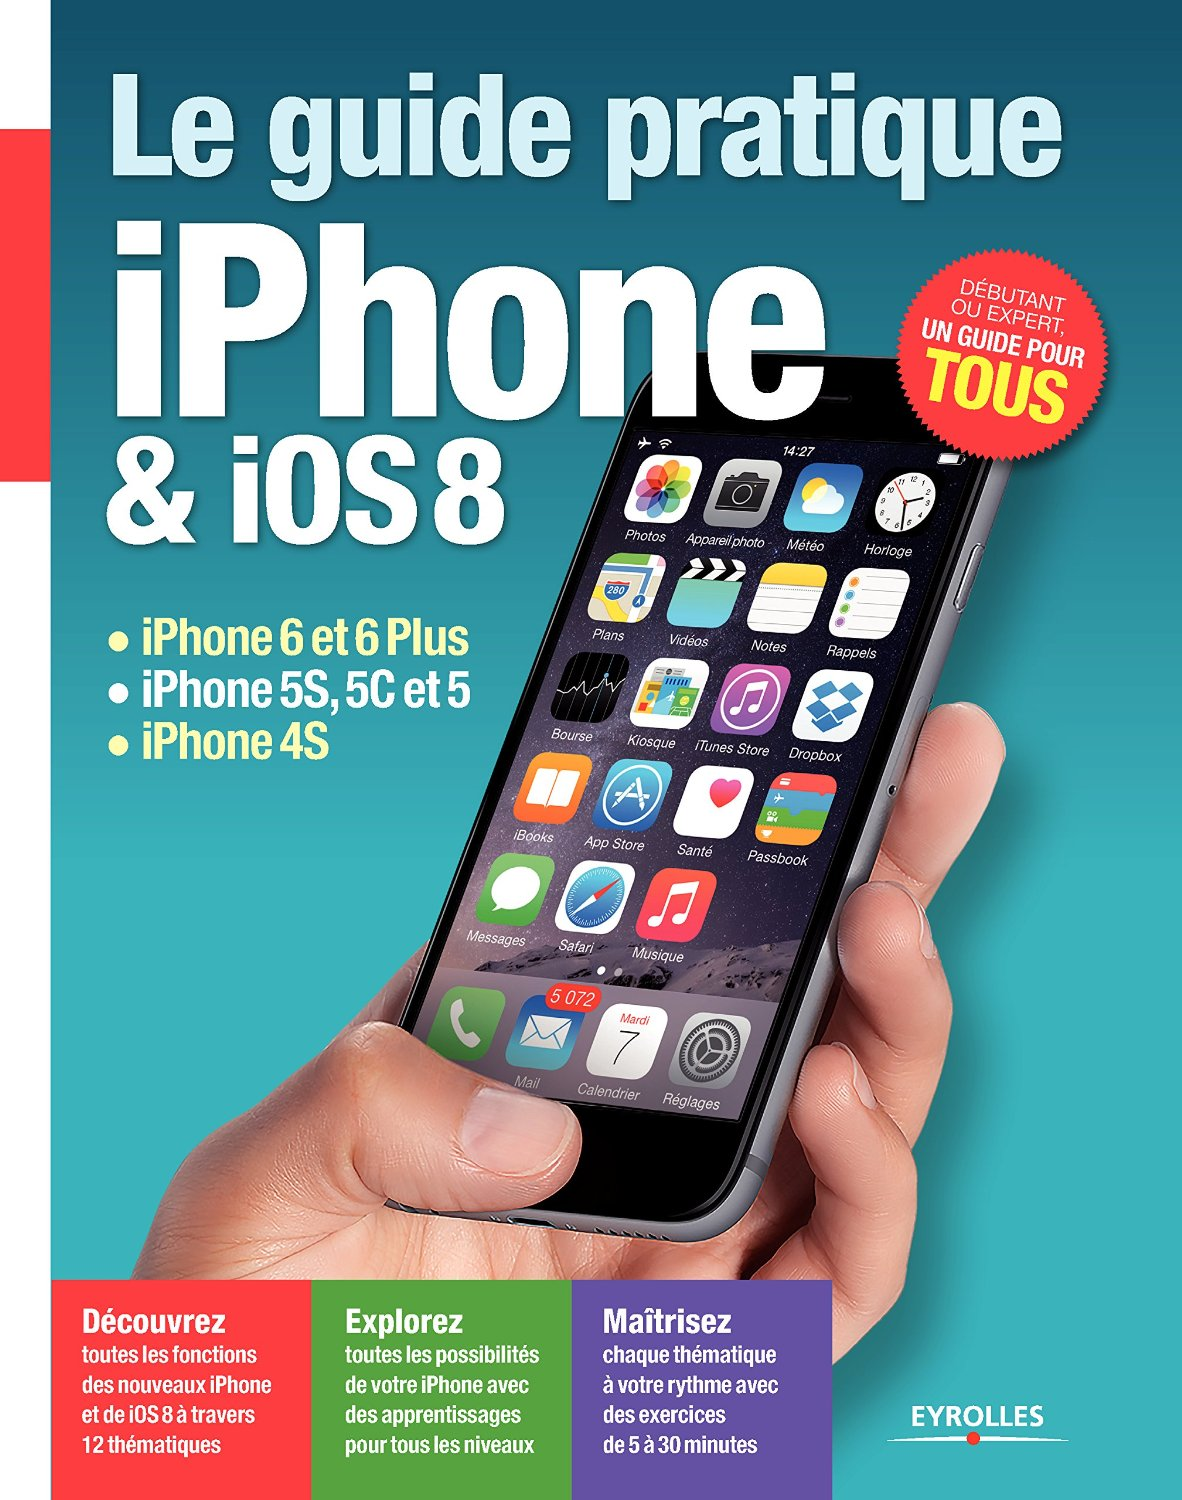 Le guide pratique iPhone et iOS 8 : iPhone 6 et 6 Plus - iPhone 5S, 5C et 5 - iPhone 4S - Débutant ou expert, un guide pour tous